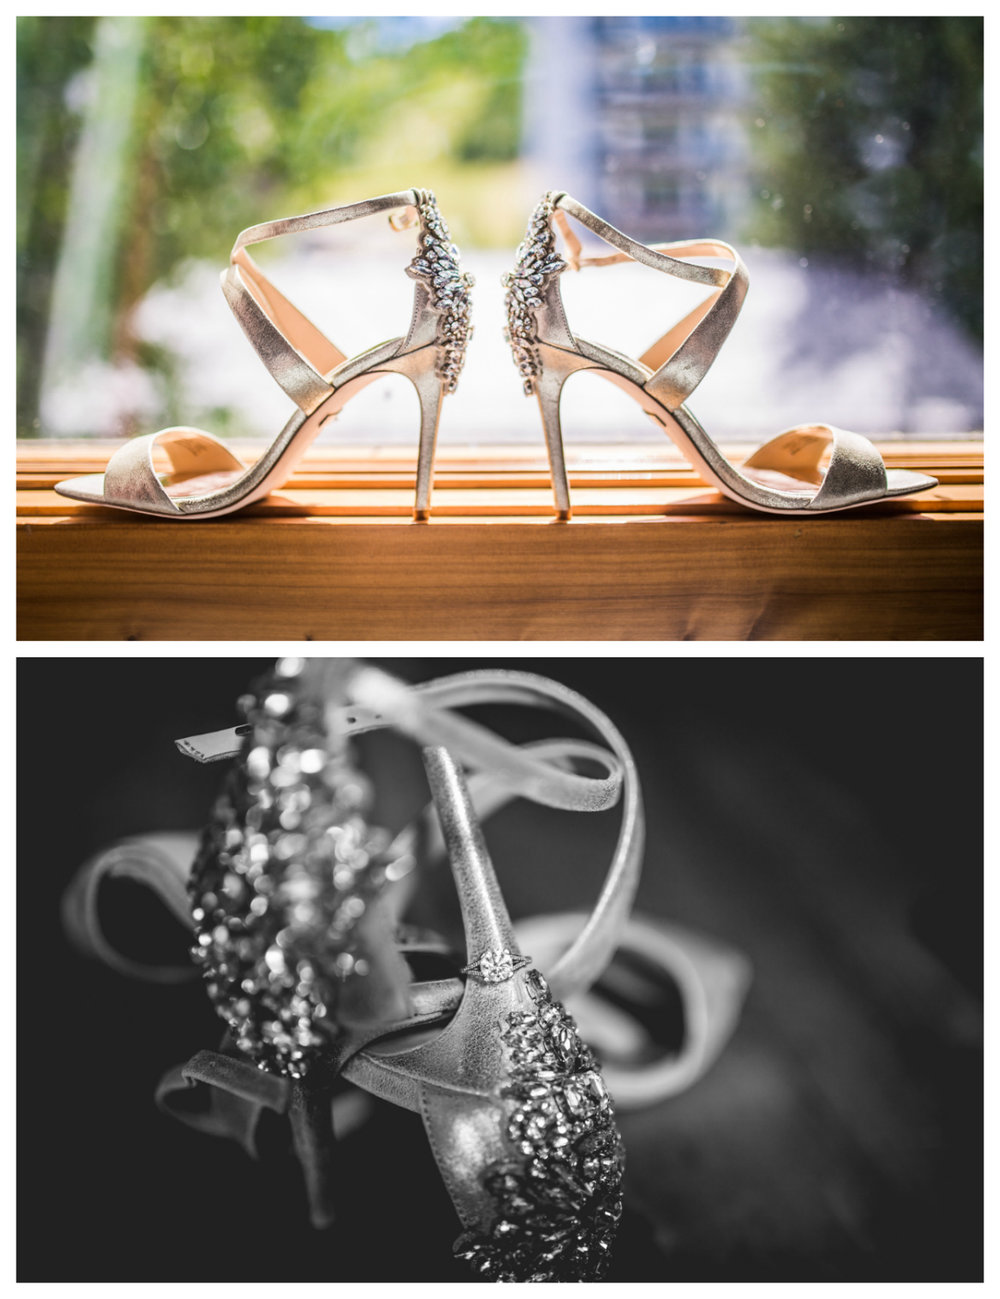 Wedding shoes for a Vail Colorado Wedding photographed by JMGant Photography.